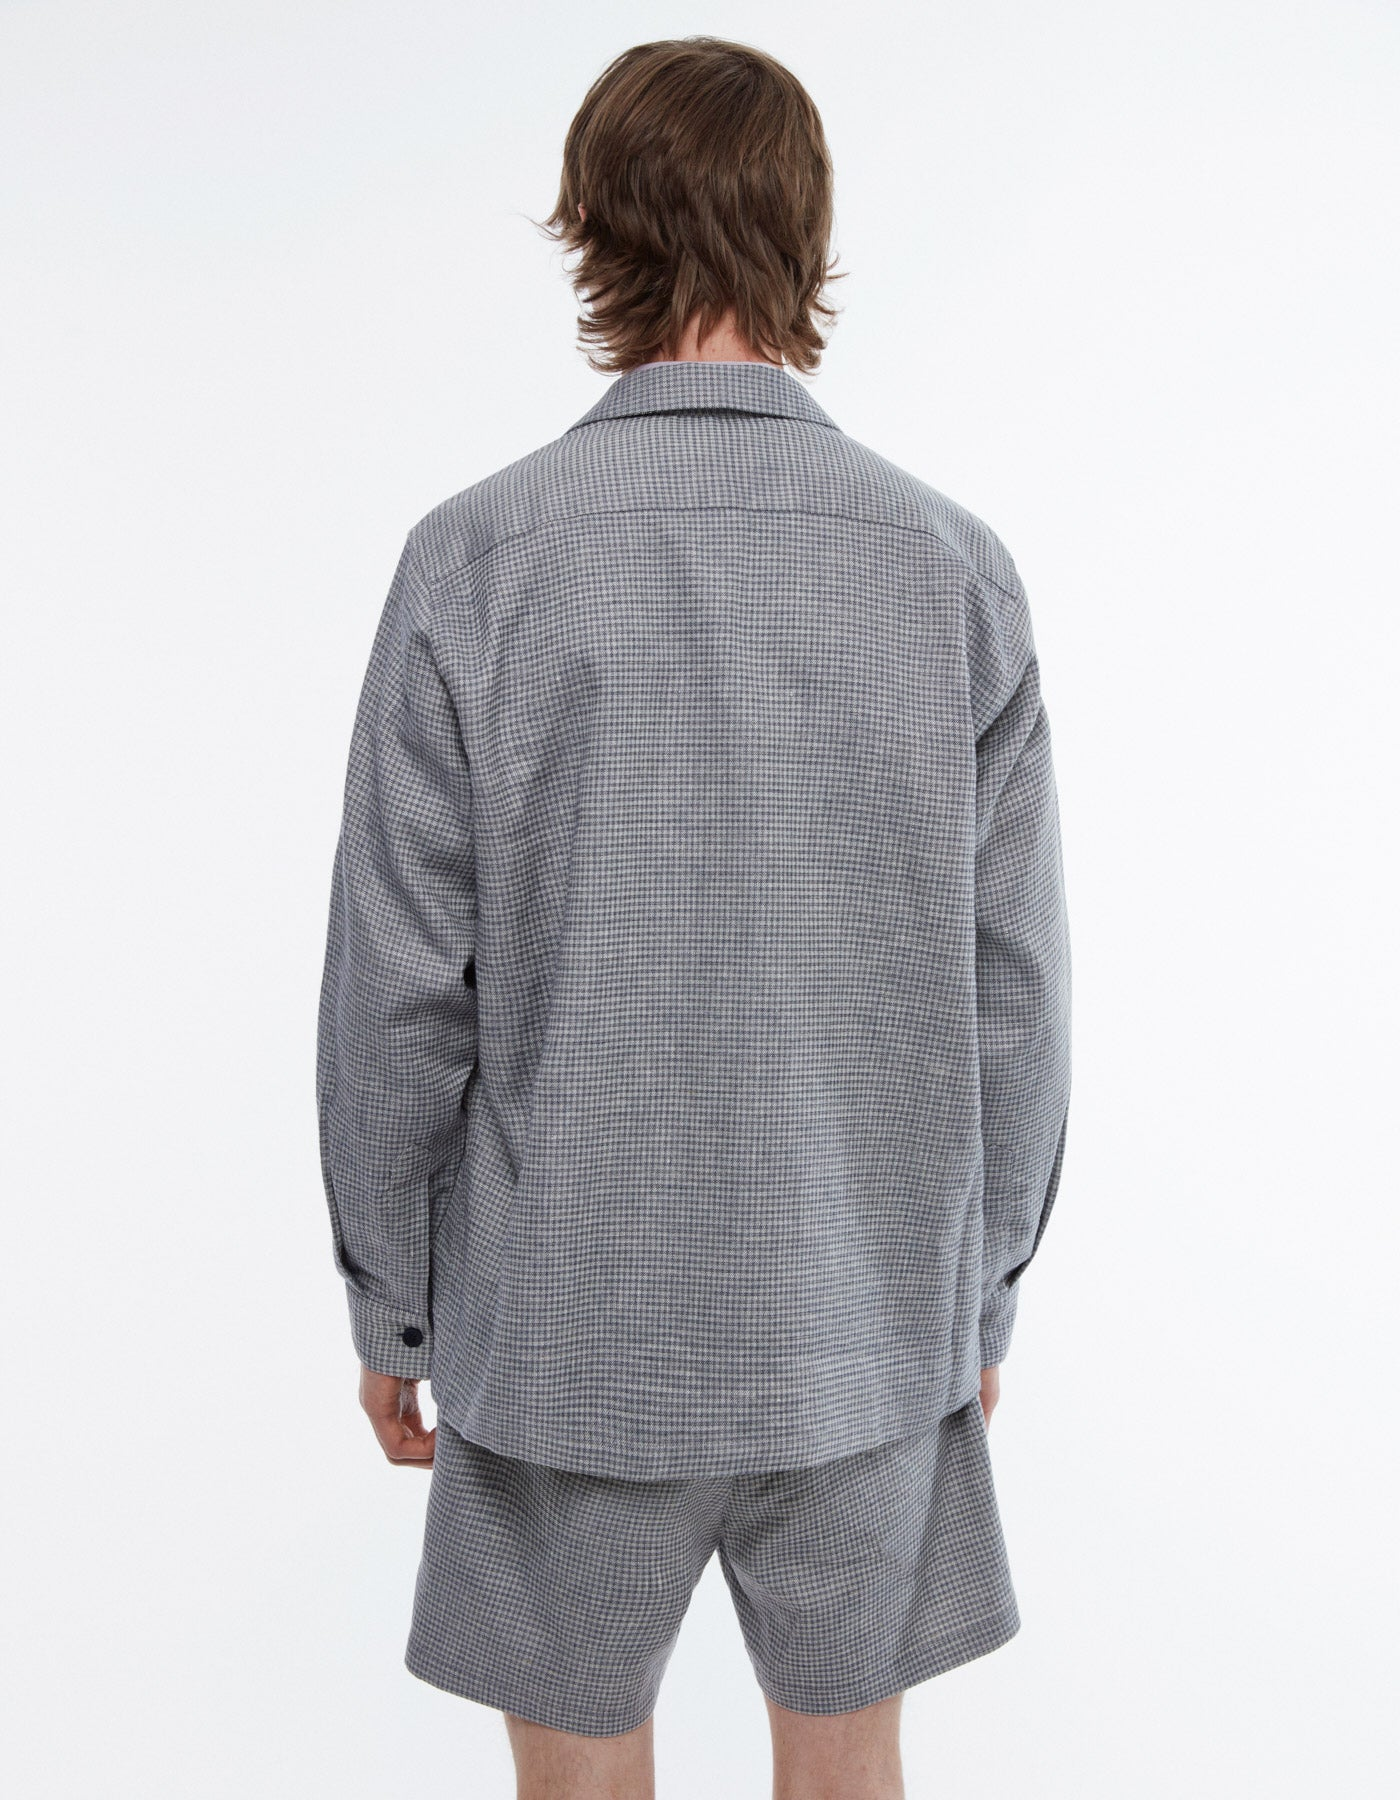 Overshirt boxy melange check blue/grey